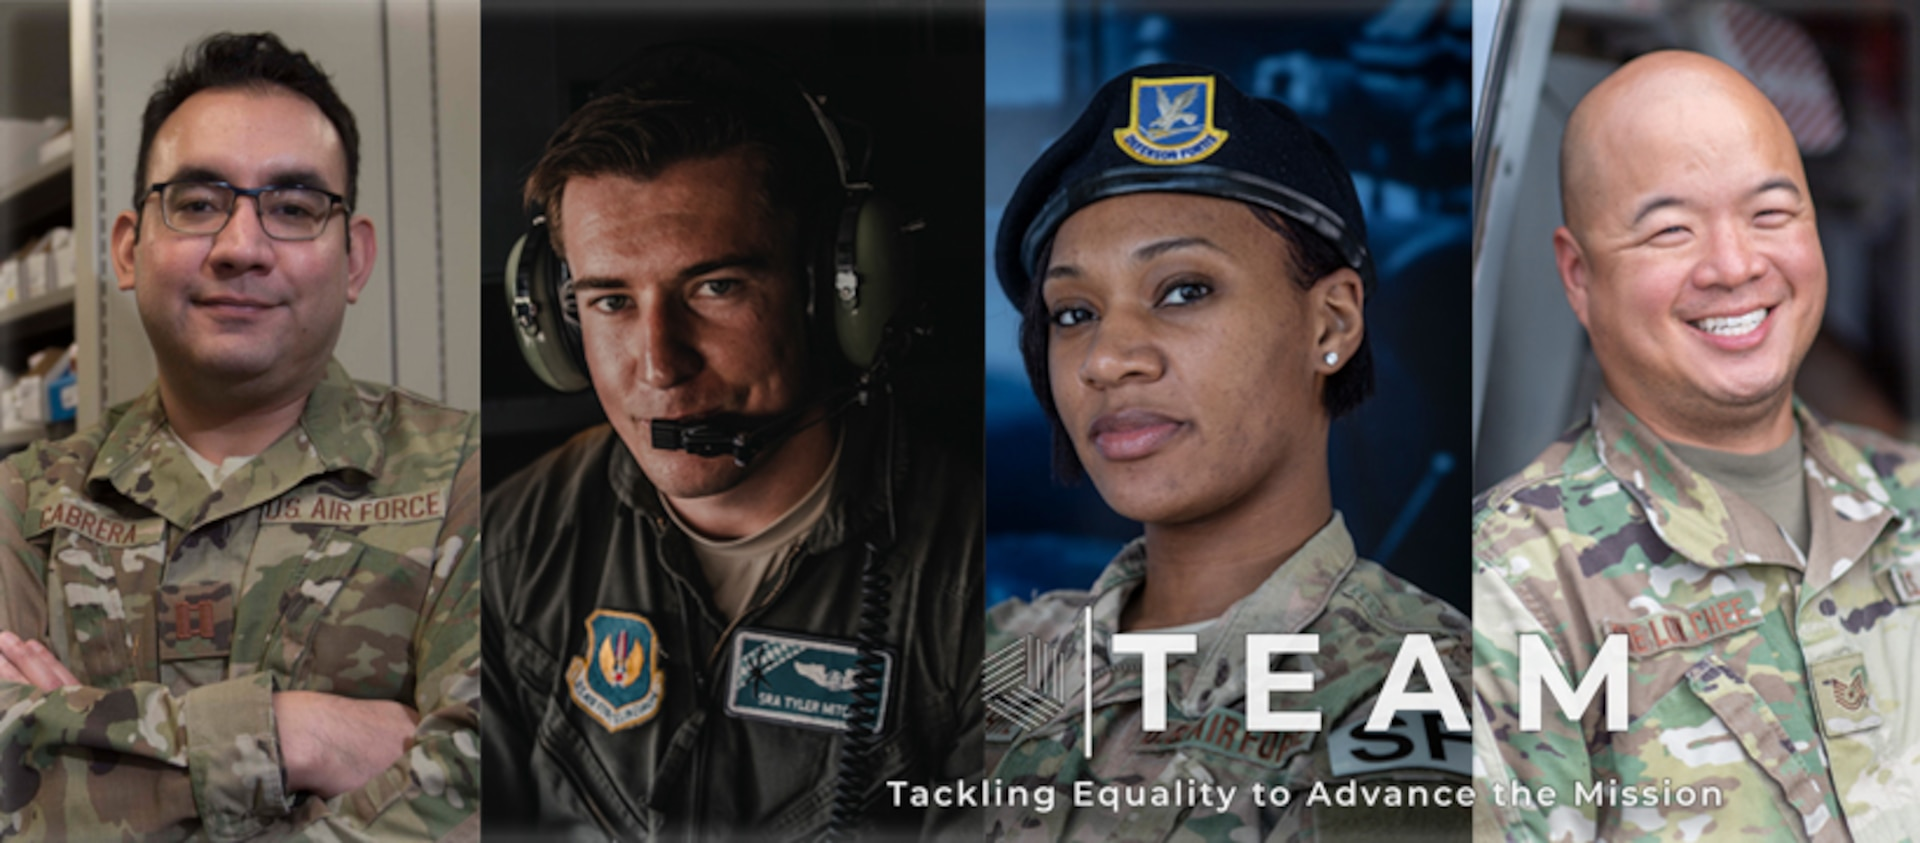 Tackling Equality to Advance the Mission, or TEAM, is a new Air Force Recruiting Service initiative with the goal to provide a platform for Airmen throughout AFRS to identify issues of inequality or bias in programs, policies, or procedures and present solutions for senior leadership action.